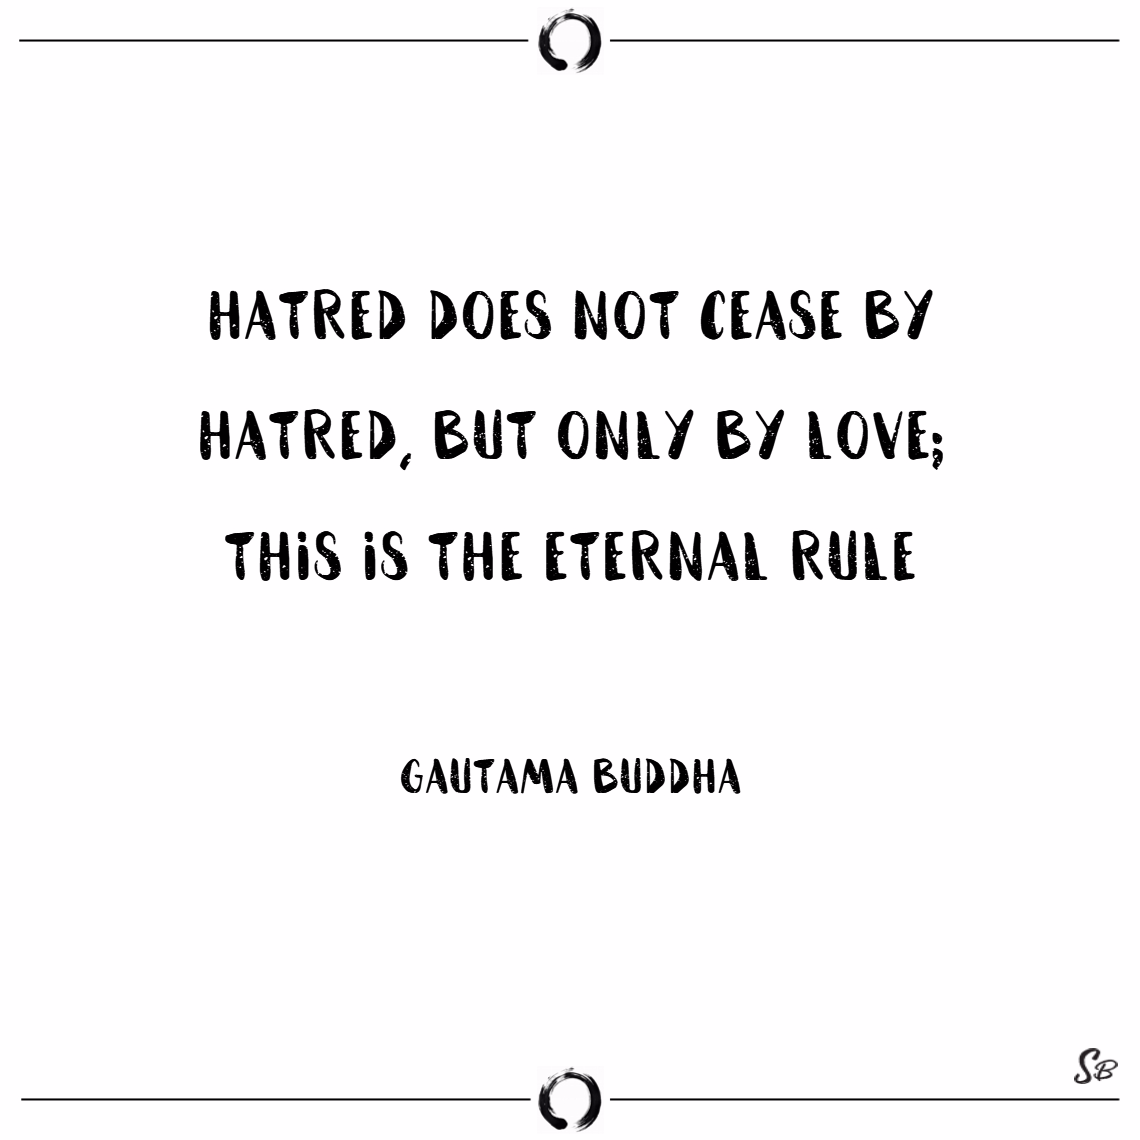 Hatred does not cease by hatred, but only by love; this is the eternal rule. – gautama buddha